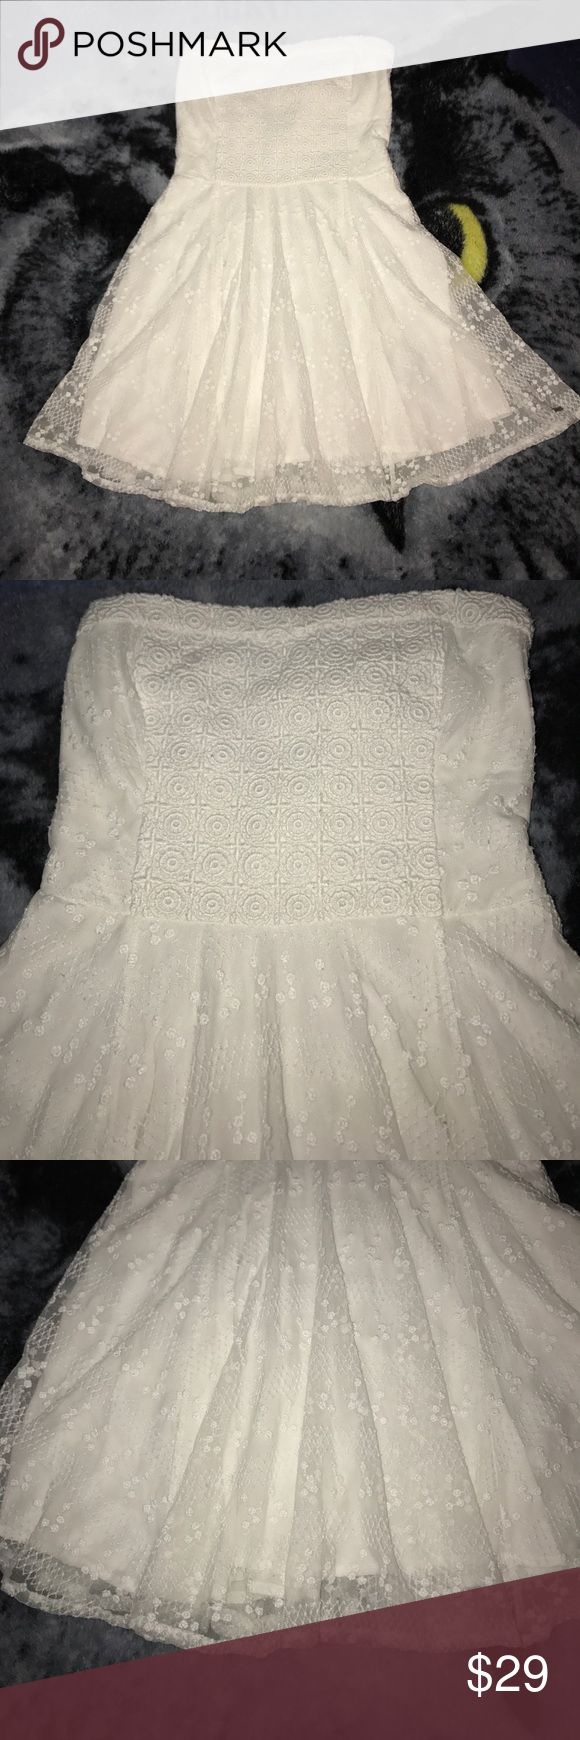 Abercrombie and Fitch dress size small White Abercrombie and Fitch dress very pretty Abercrombie & Fitch Dresses Mini